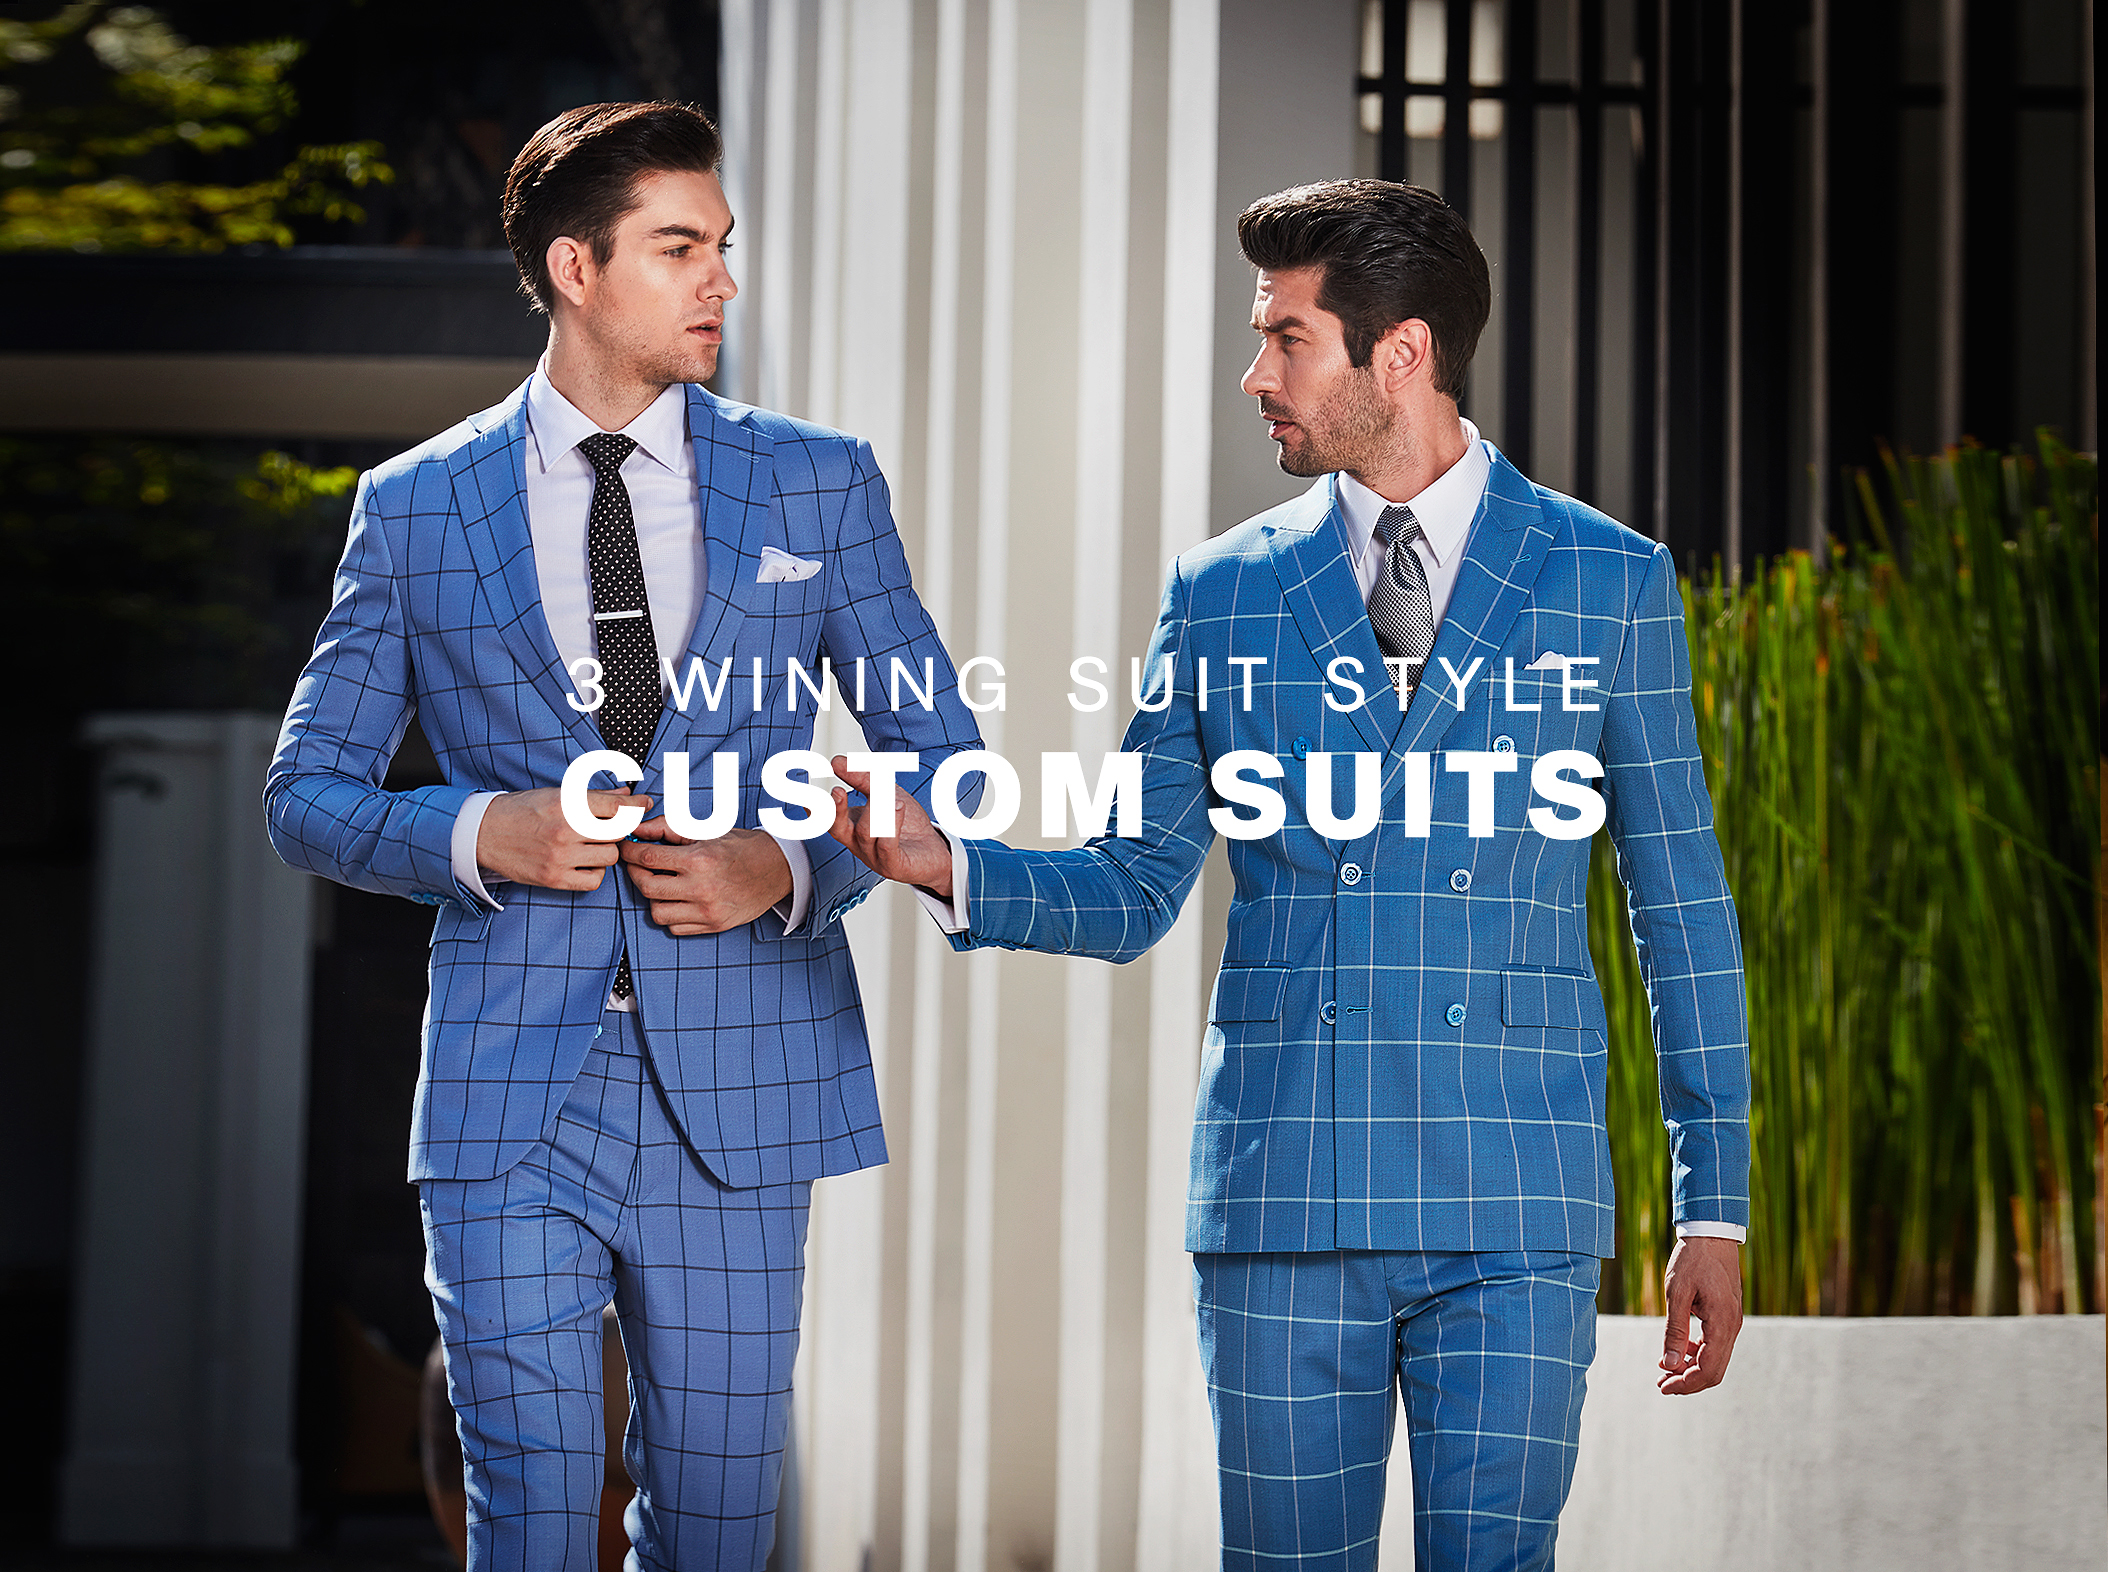 3 Winning Suit Styles for Fall 2016